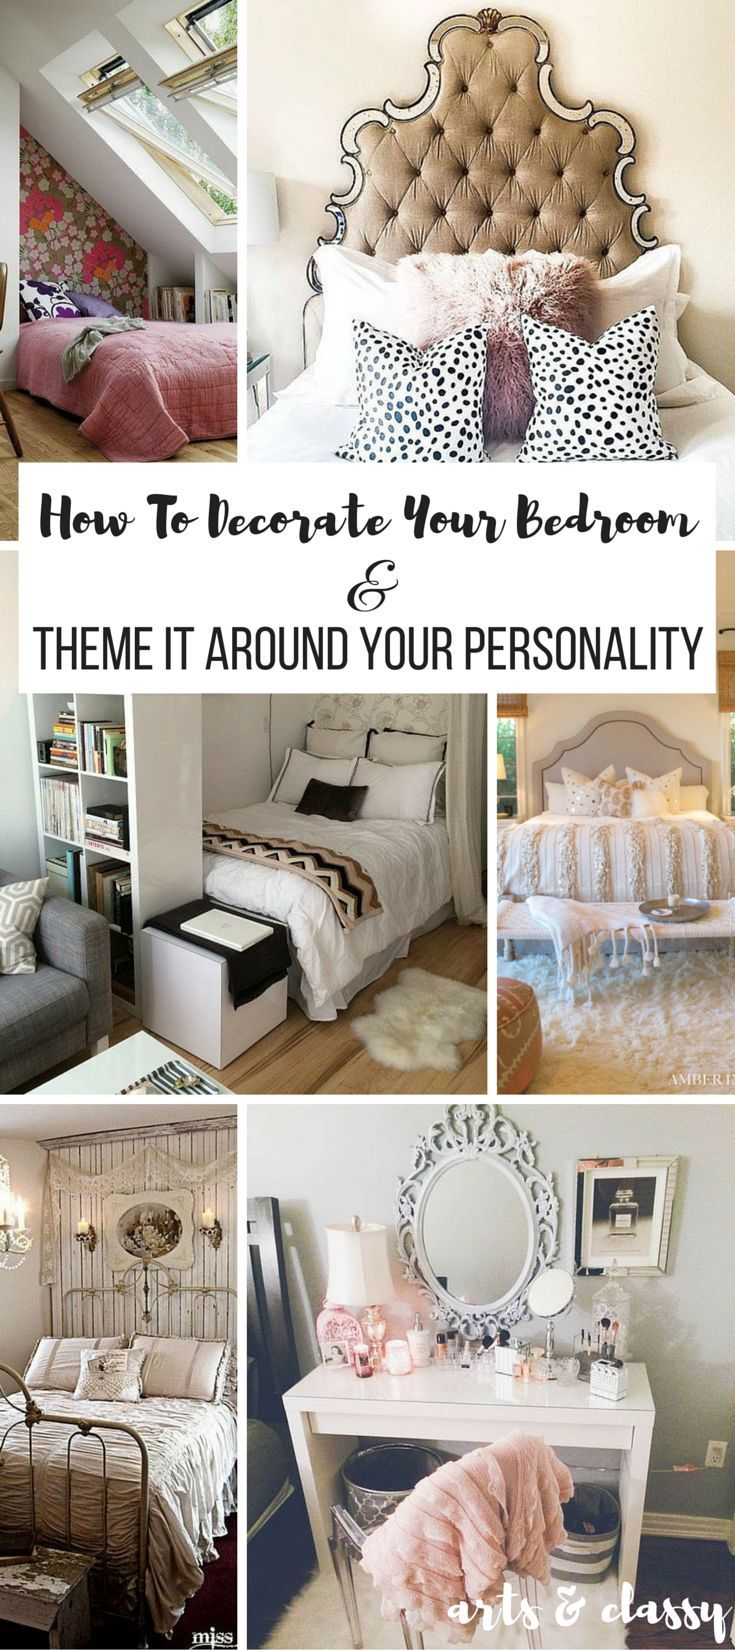 Designing Your Own Bedroom New How To Decorate Your Bedroom & Theme It Around Your Personality Decorating Inspiration